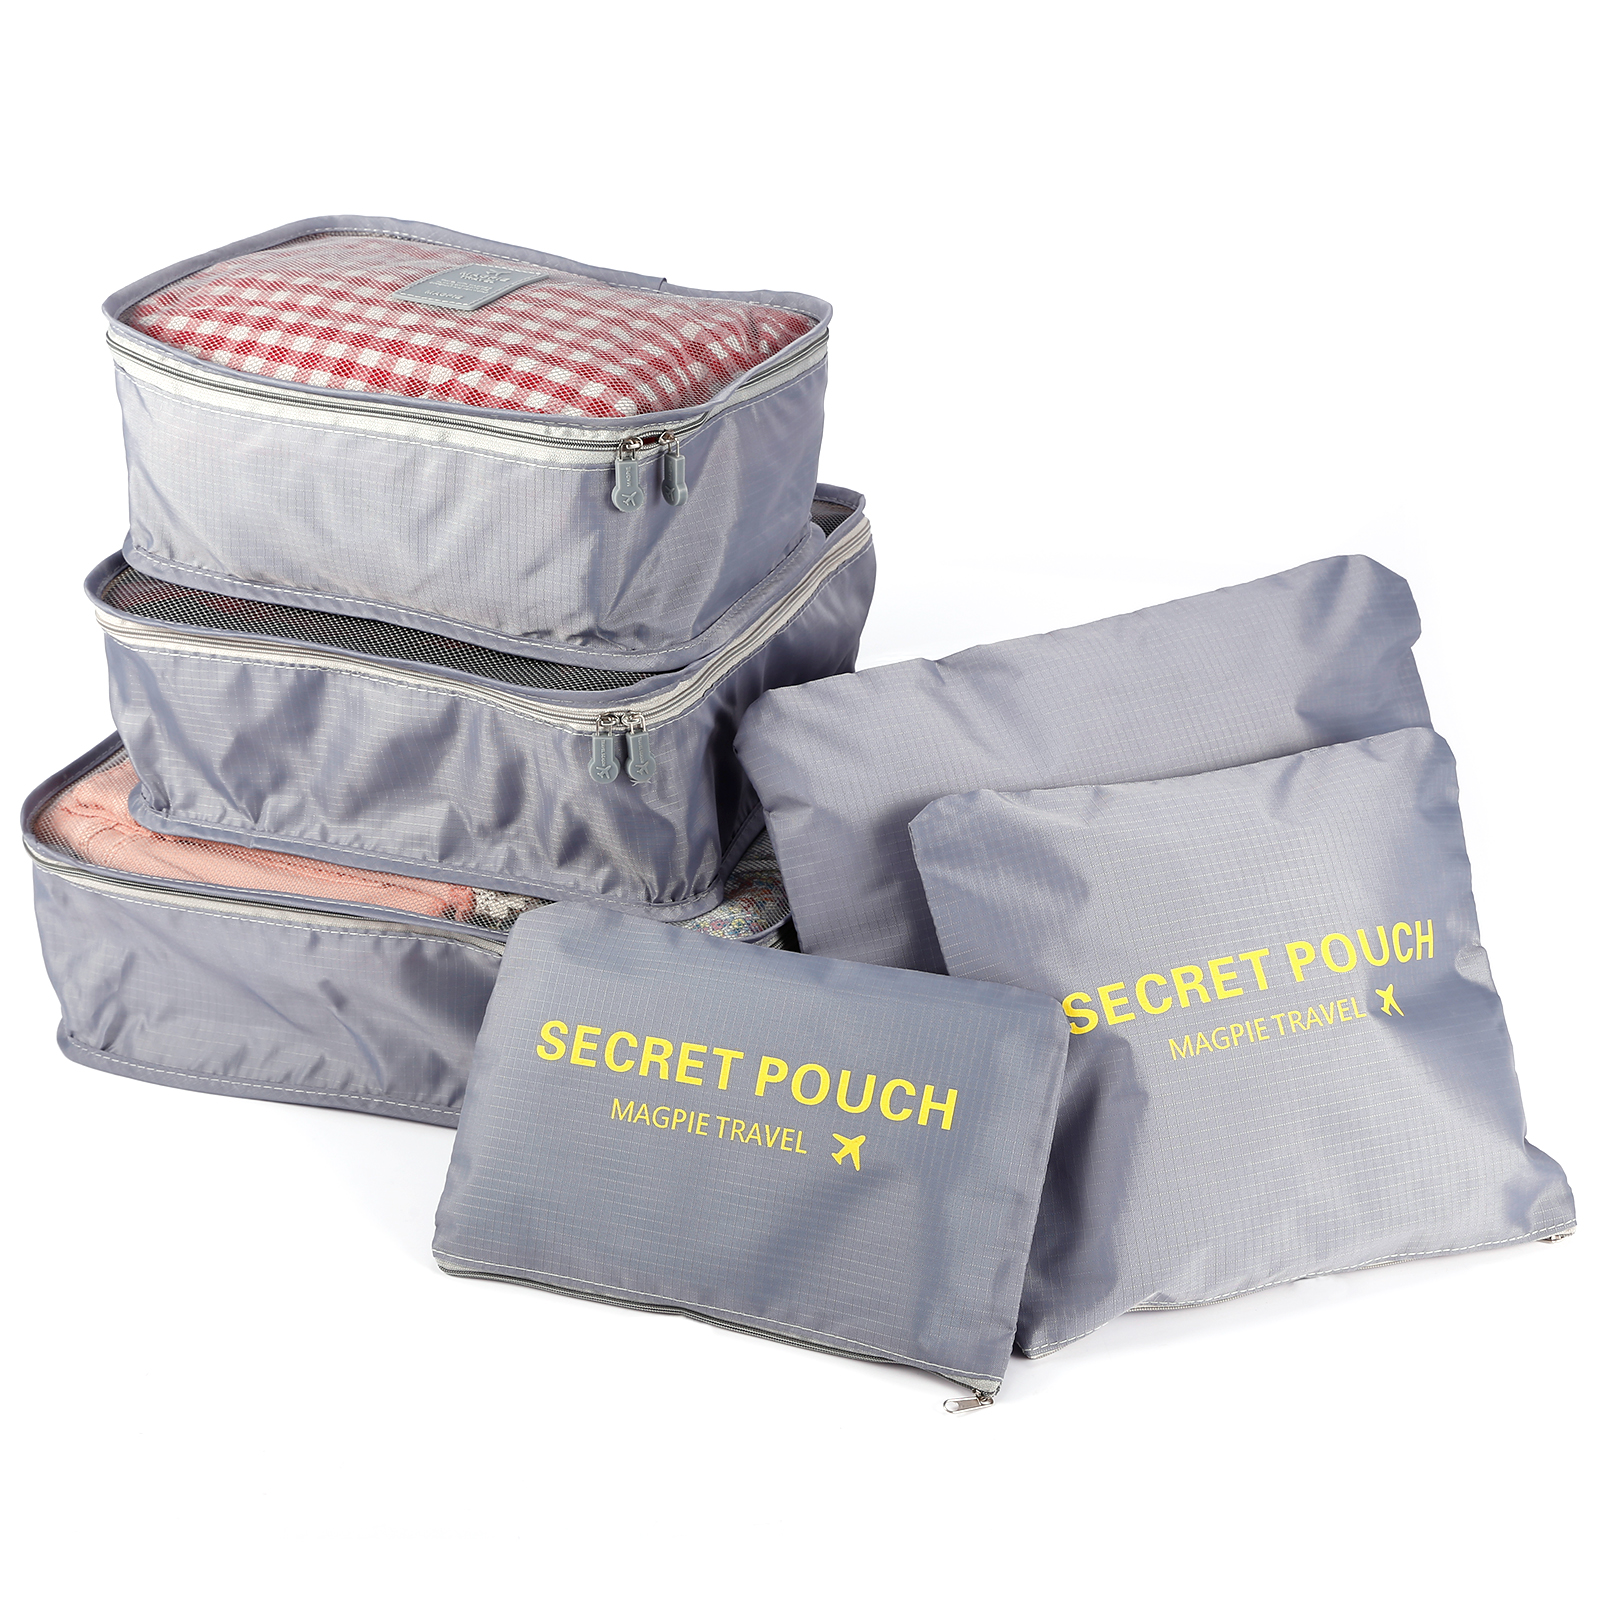 6x packing cubes travel organizers travel storage laundry. Black Bedroom Furniture Sets. Home Design Ideas